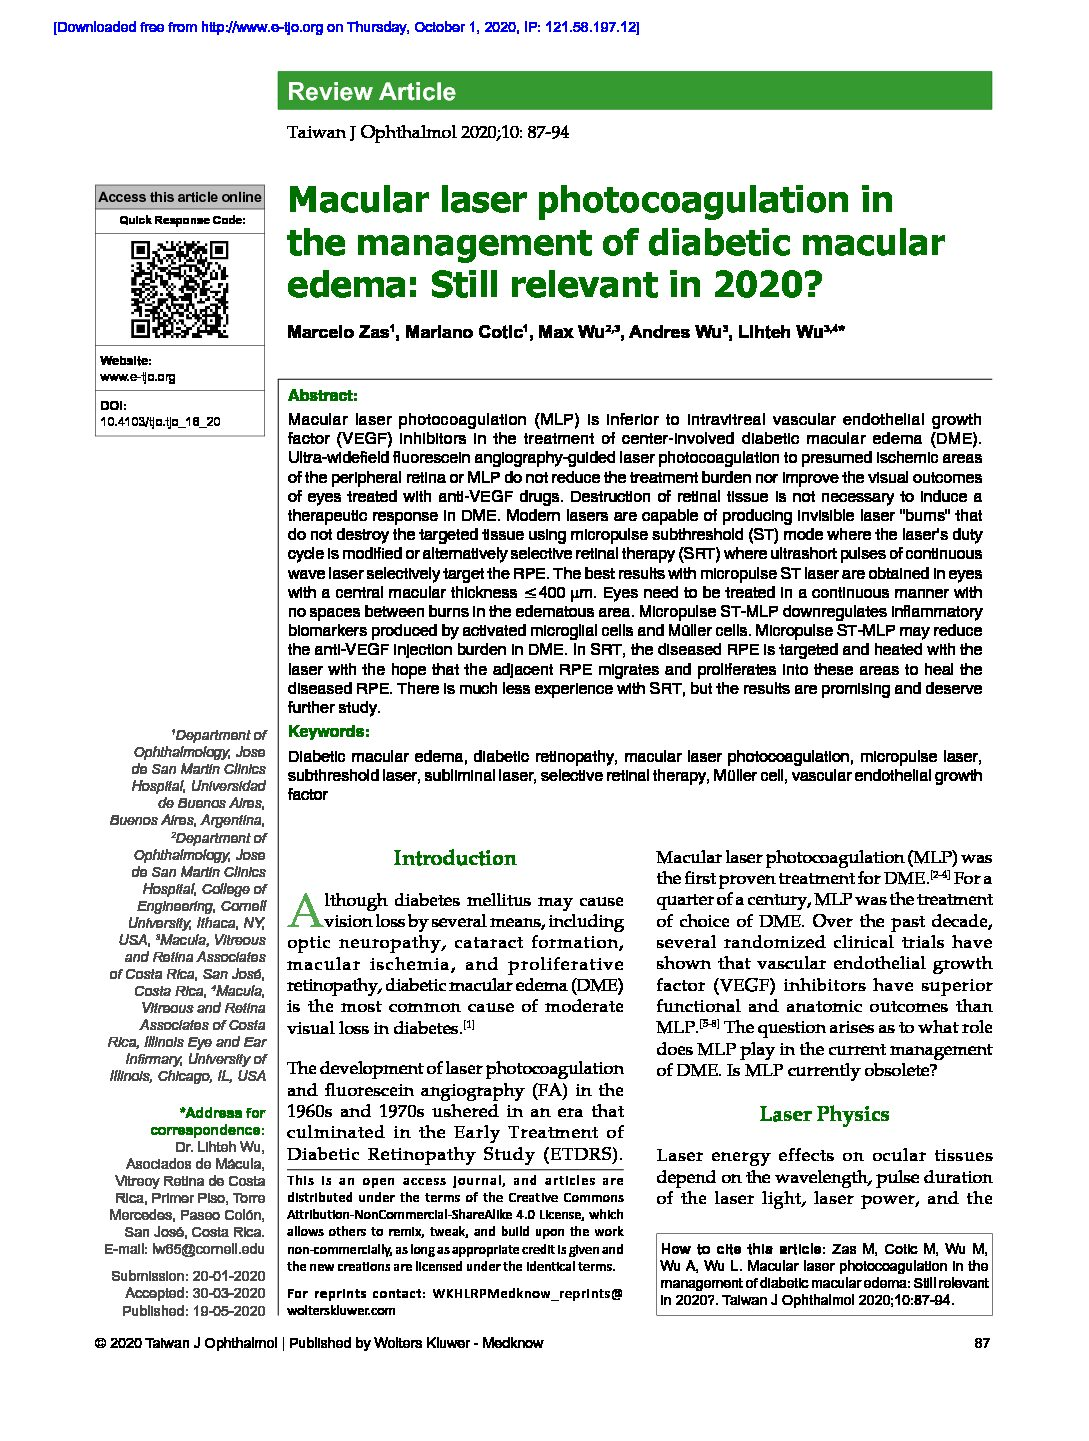 Macular laser photocoagulation in the management of diabetic macular edema